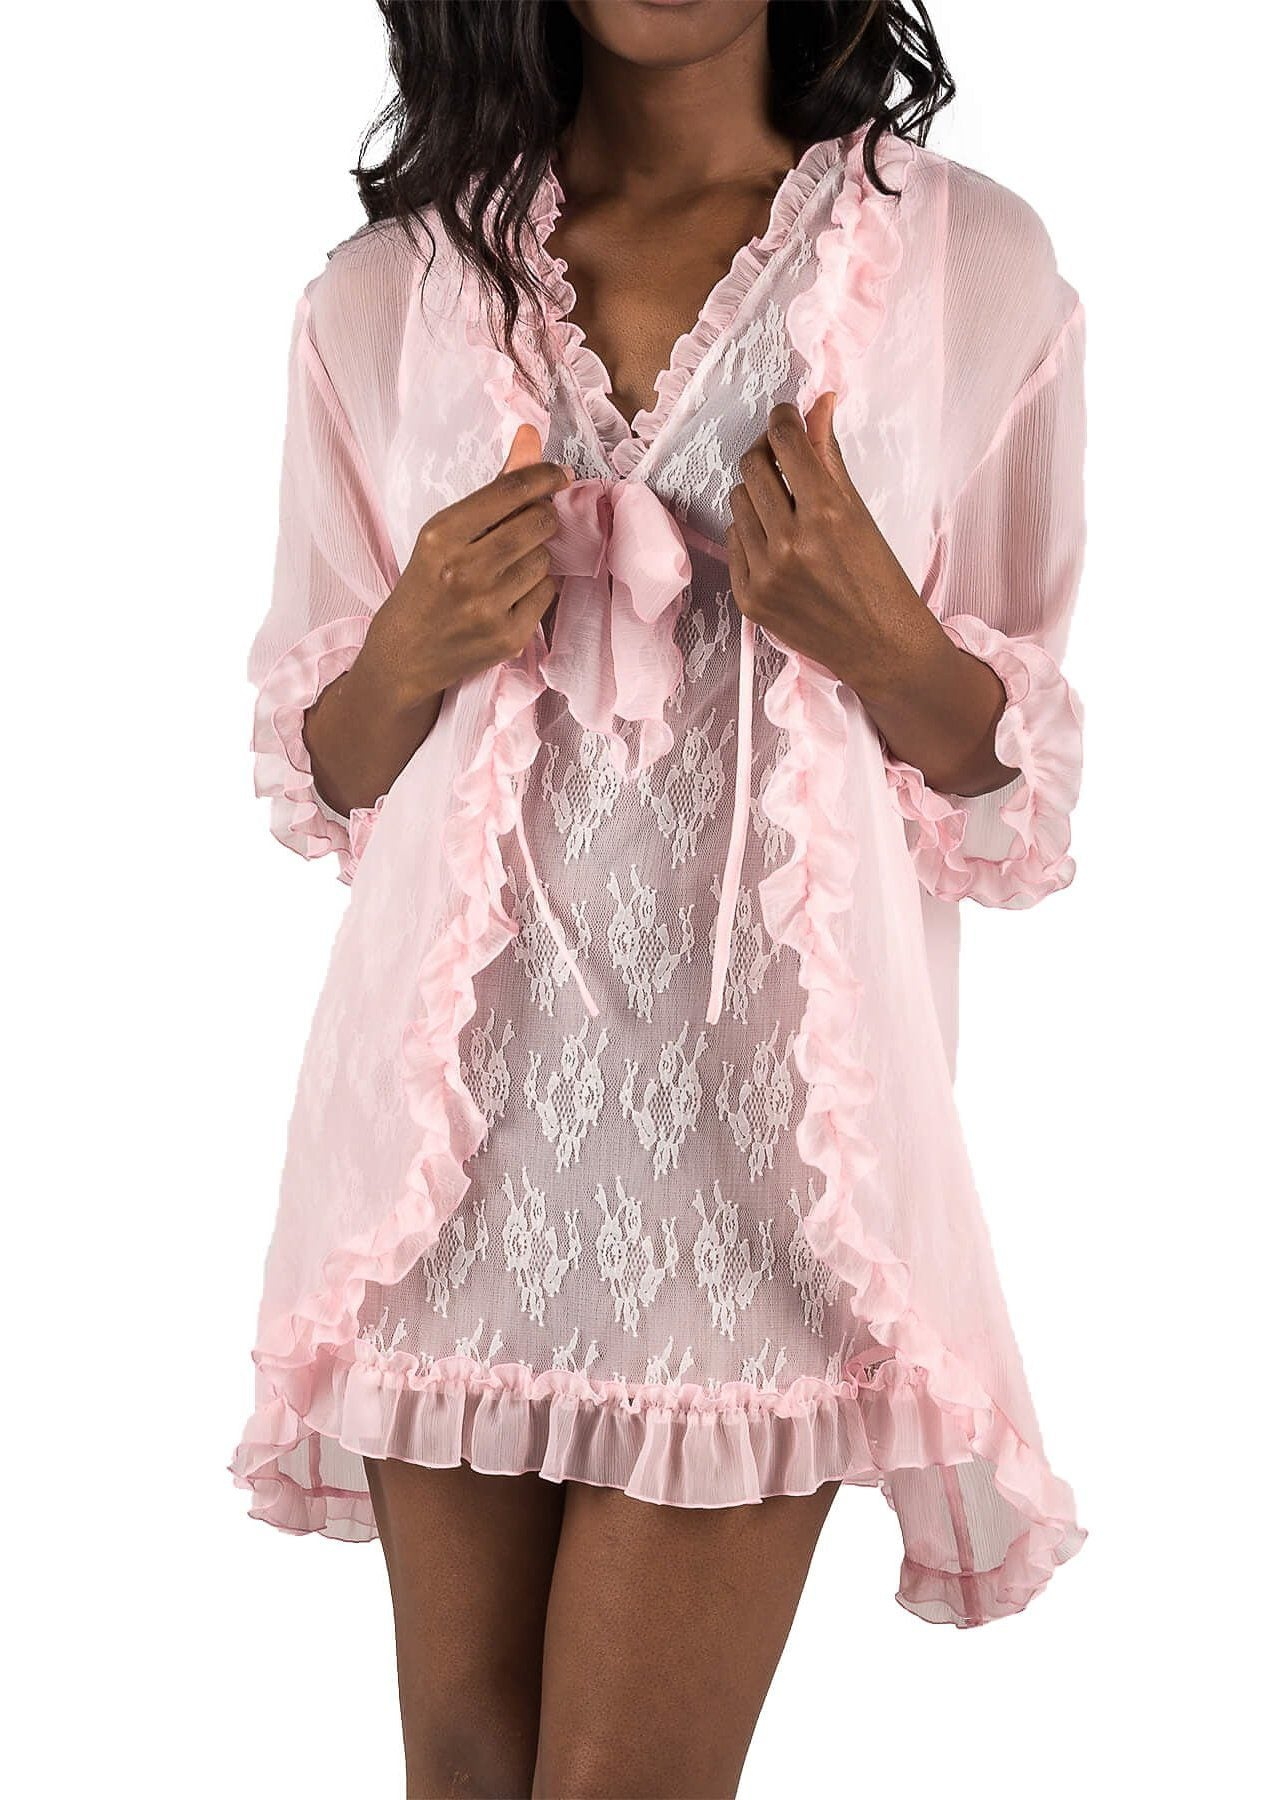 Chantilly Short Nightgown and Cover Up - Ice Pink Mystique Intimates